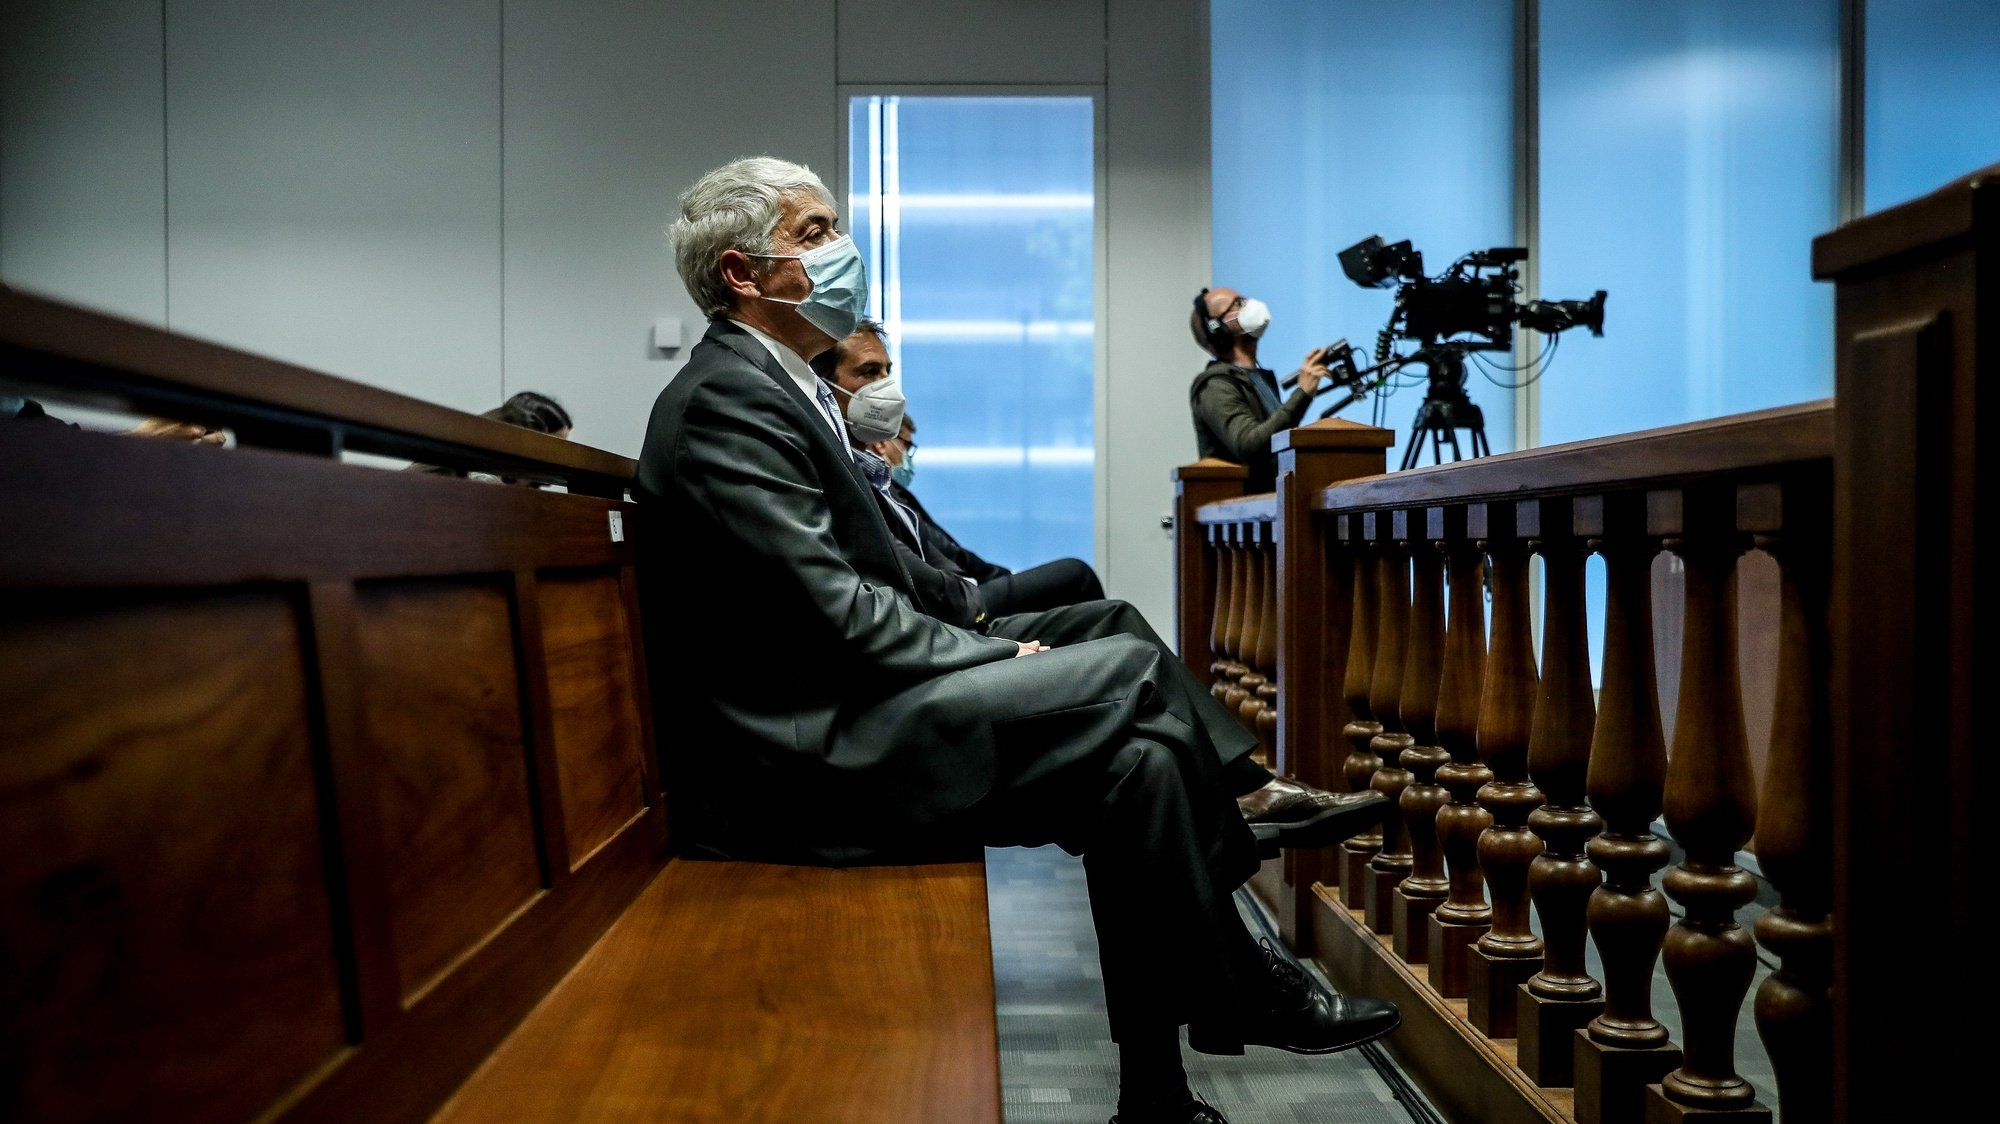 The defendant and former Prime Minister Jose Socrates during the reading of the instructional decision of the high-profile corruption case known as Operation Marques, at the Justice Campus in Lisbon, Portugal, 09 April 2021. Operation Marques has 28 defendants - 19 people and 9 companies - including former Prime Minister Jose Socrates, banker Ricardo Salgado, businessman and friend of Socrates Carlos Santos Silva, and senior executives of Portugal Telecom, and is related to crimes of active and passive corruption, money laundering, document forgery, and tax fraud.  MARIO CRUZ/POOL/LUSA